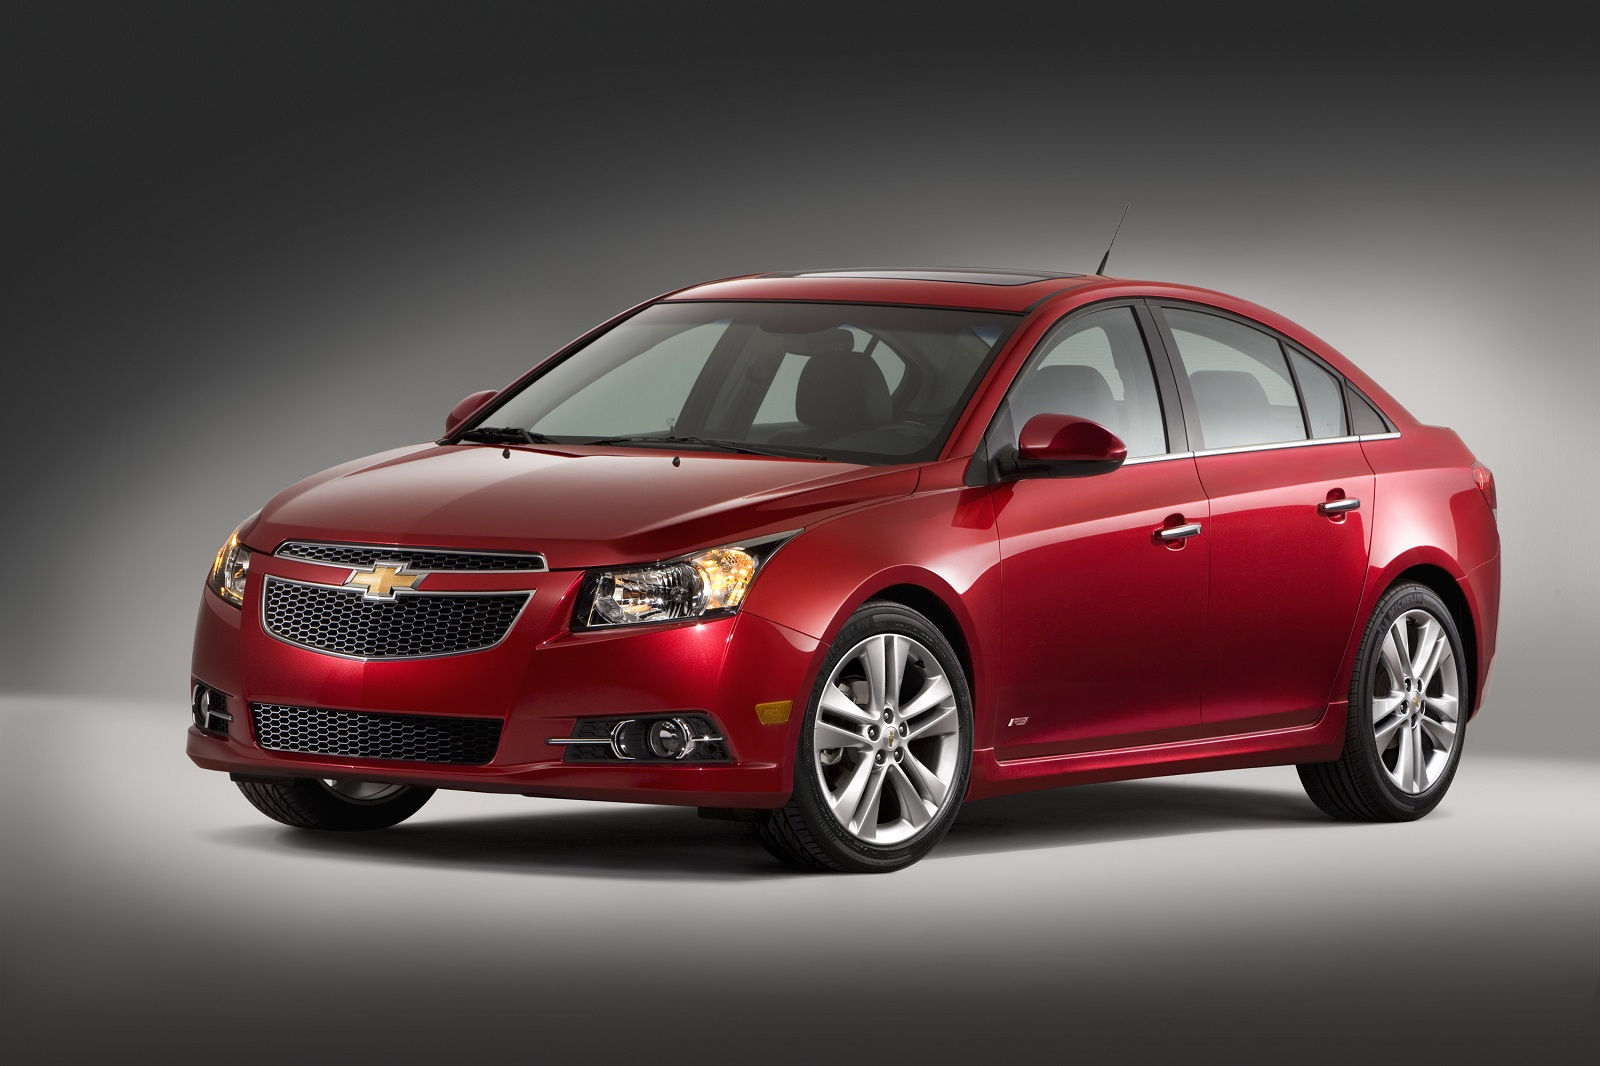 Cruze chevy cruze 2012 : 2011-2012 Chevrolet Cruze Recalled For Brake Issue